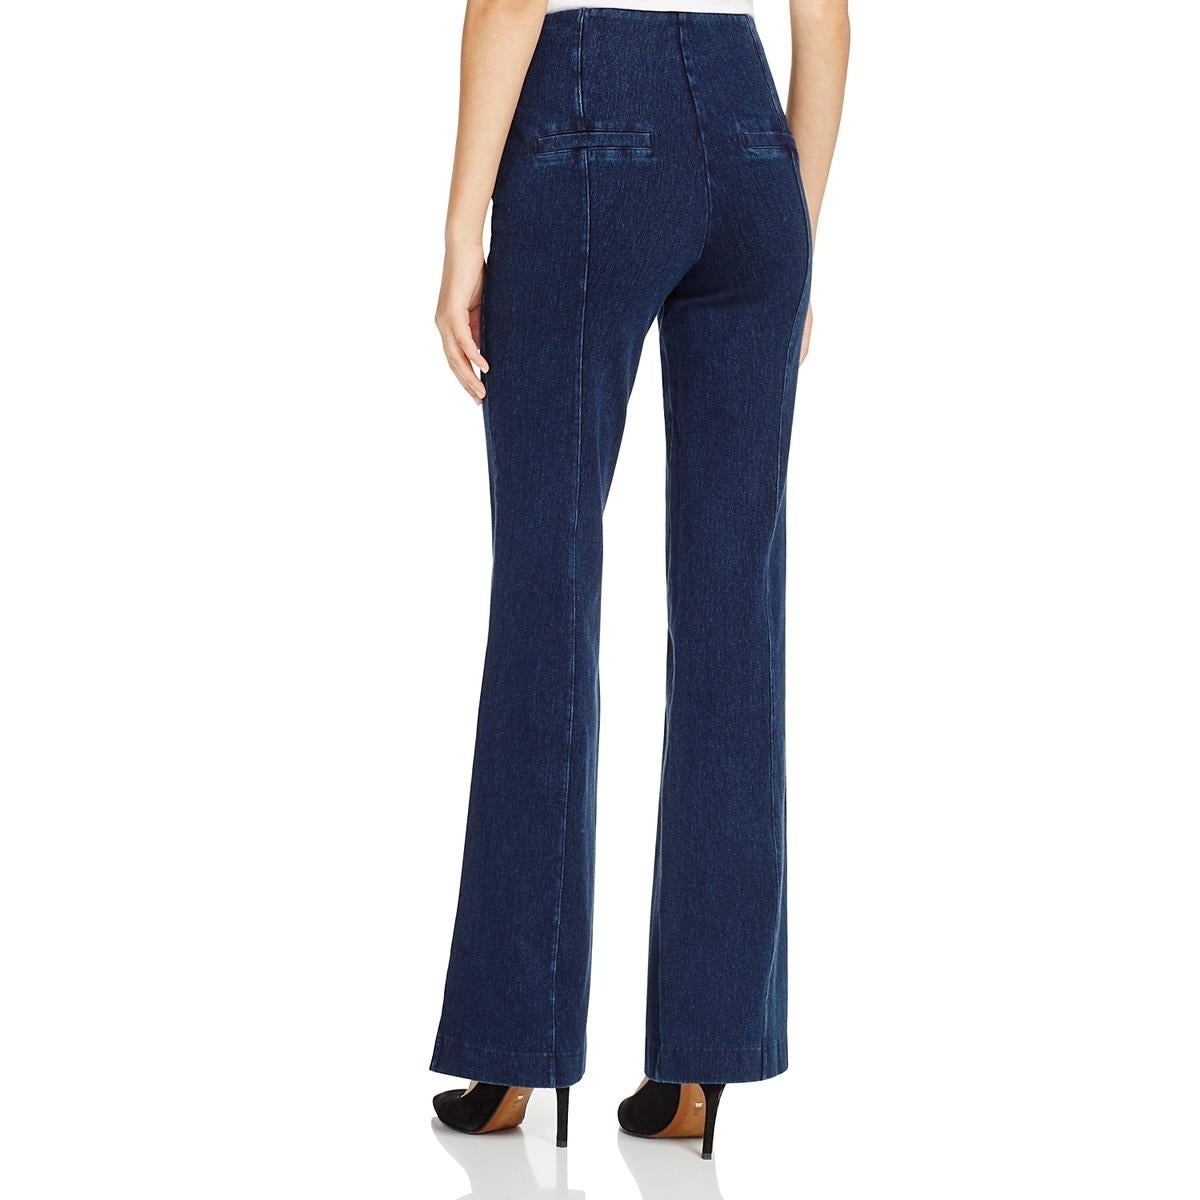 5c87046fdef Shop Lysse Womens Trouser Jeans Denim High Rise - Free Shipping On Orders  Over  45 - Overstock - 22490727